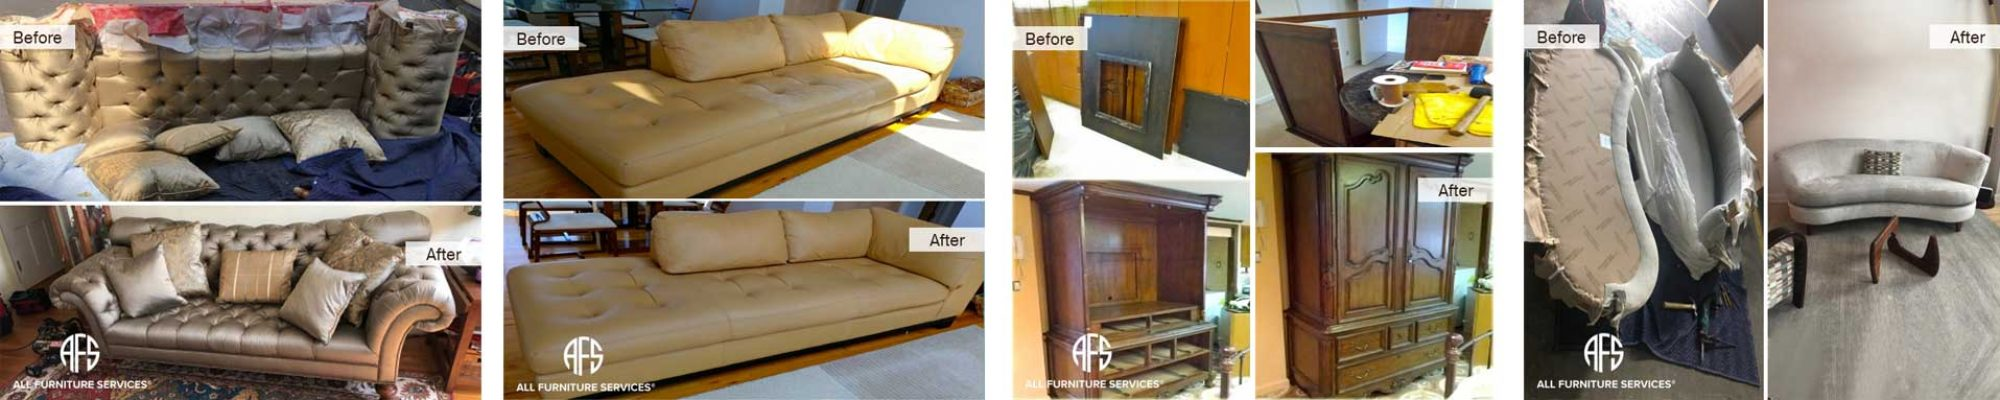 Furniture Disassembly CT